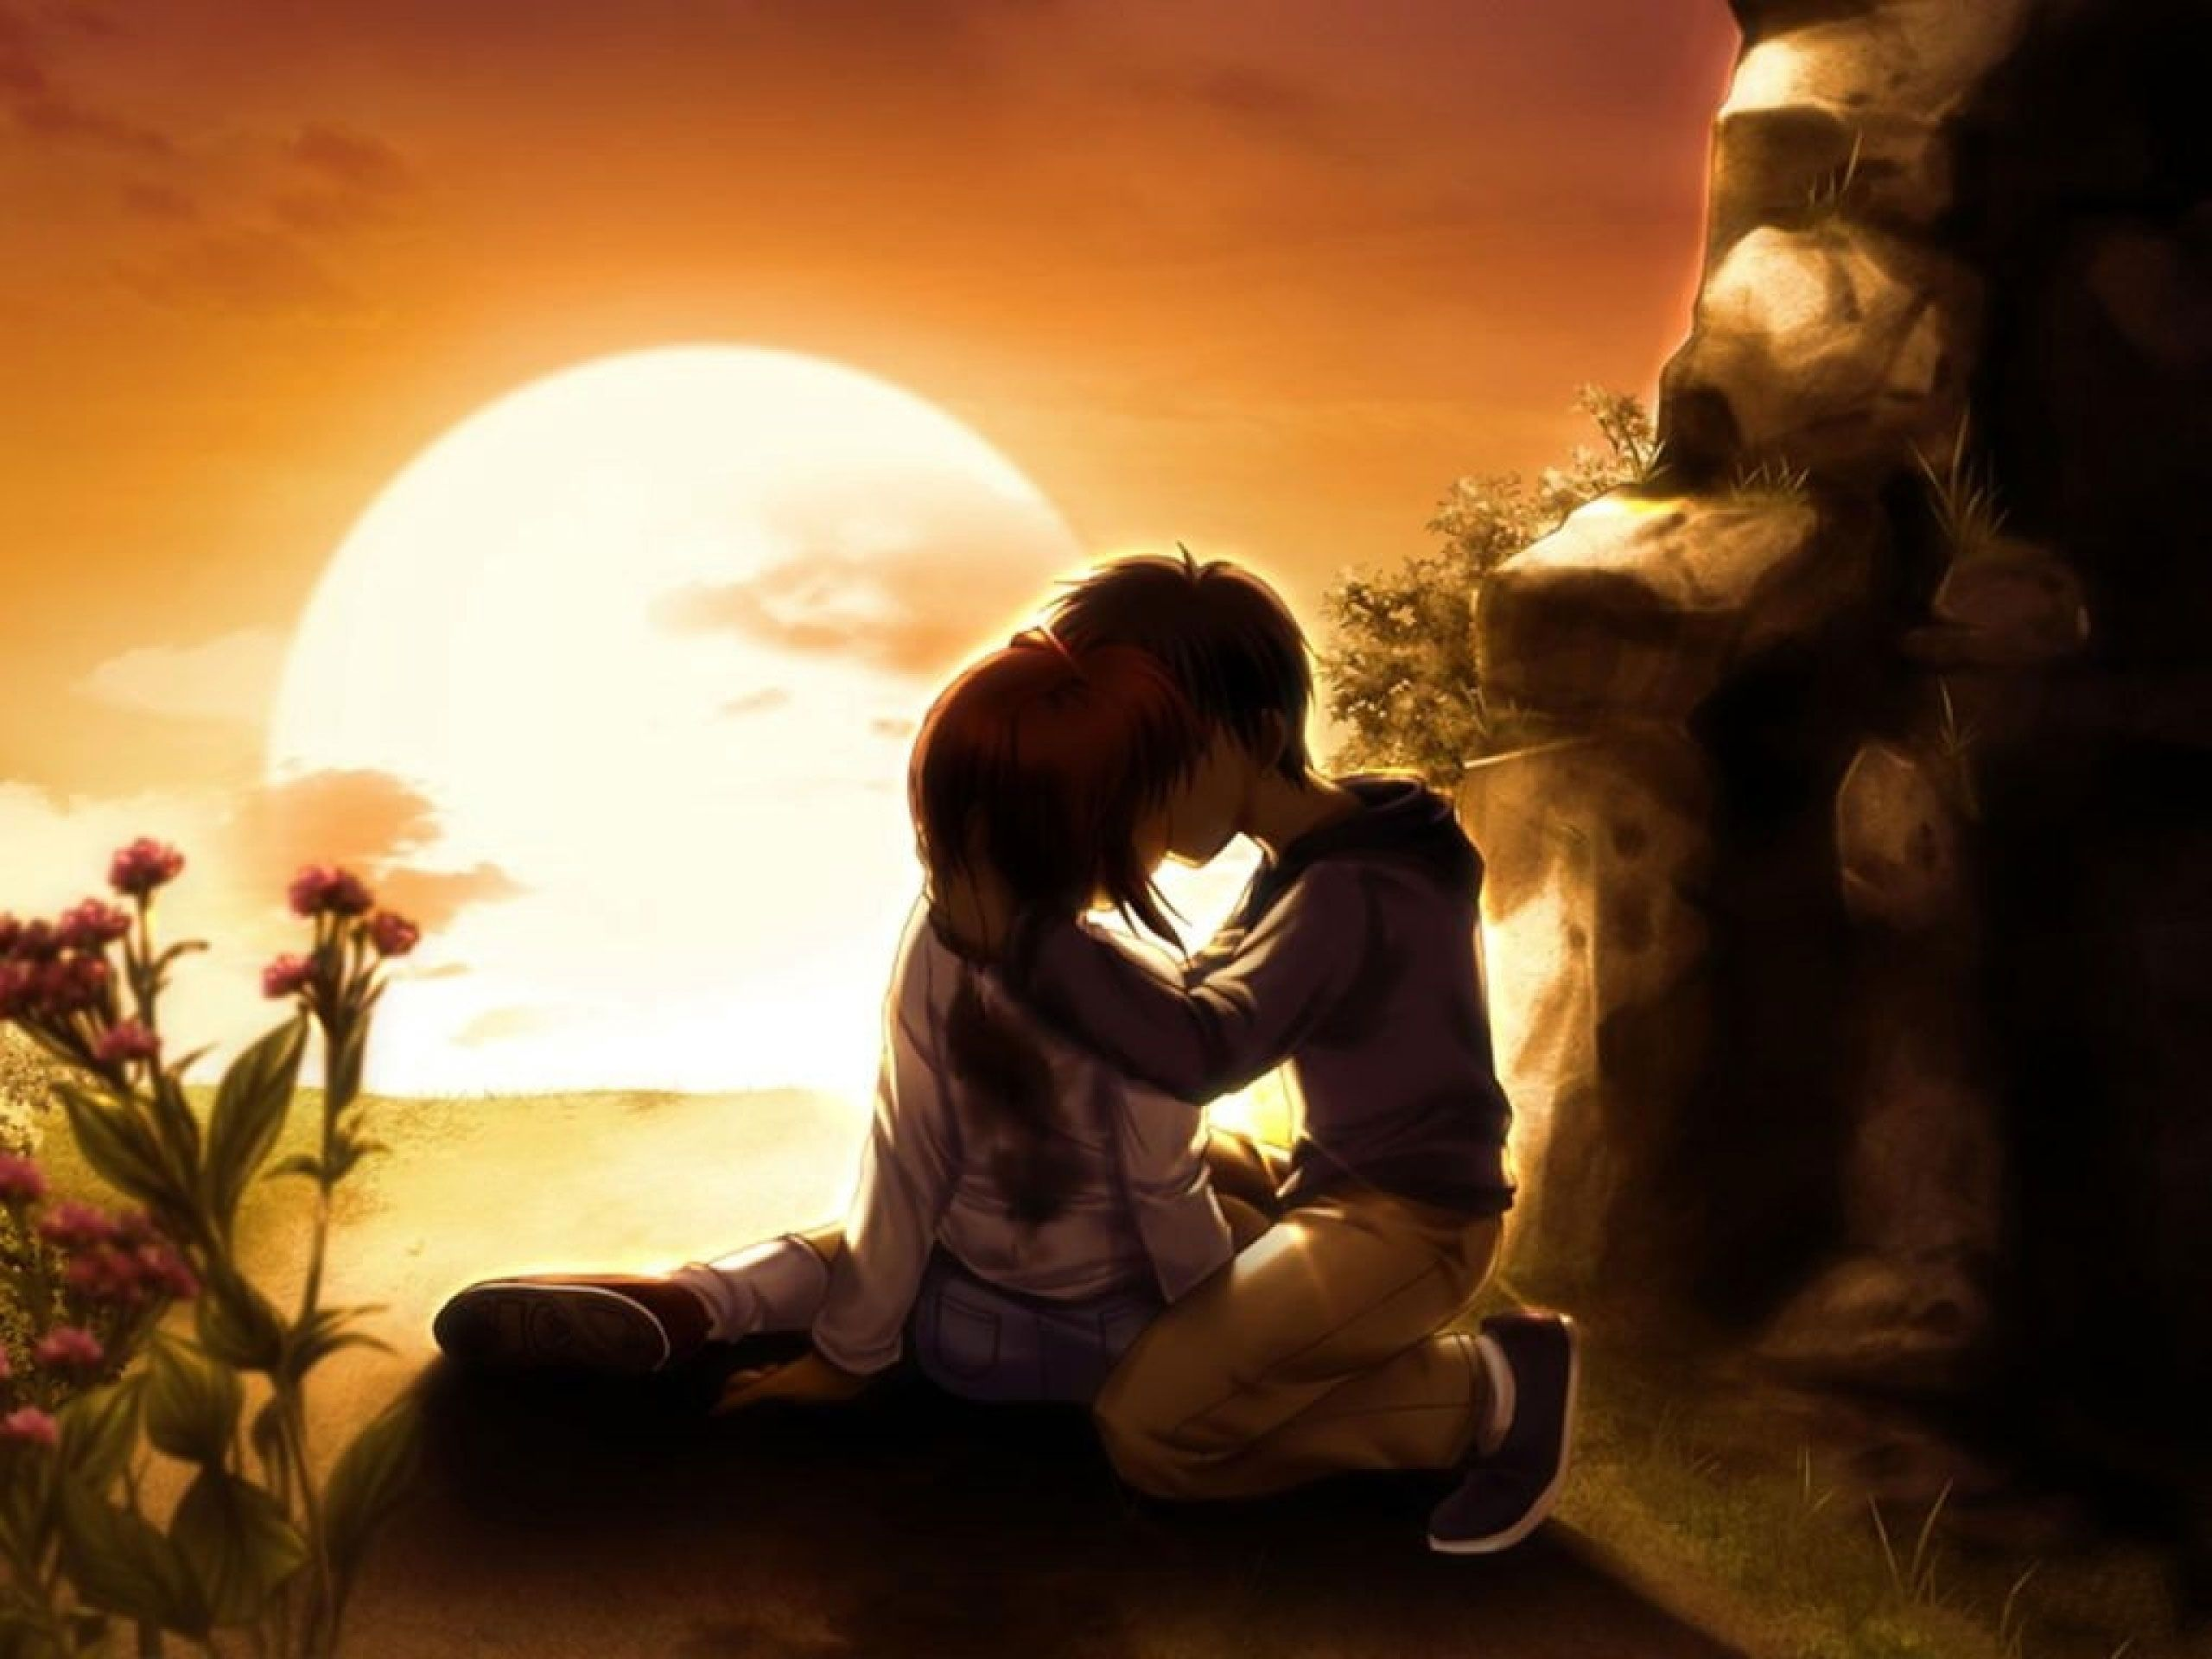 Love couple Painting Wallpaper : love wallpapers best Really funny pictures And Wallpapers HD Wallpapers Pinterest ...